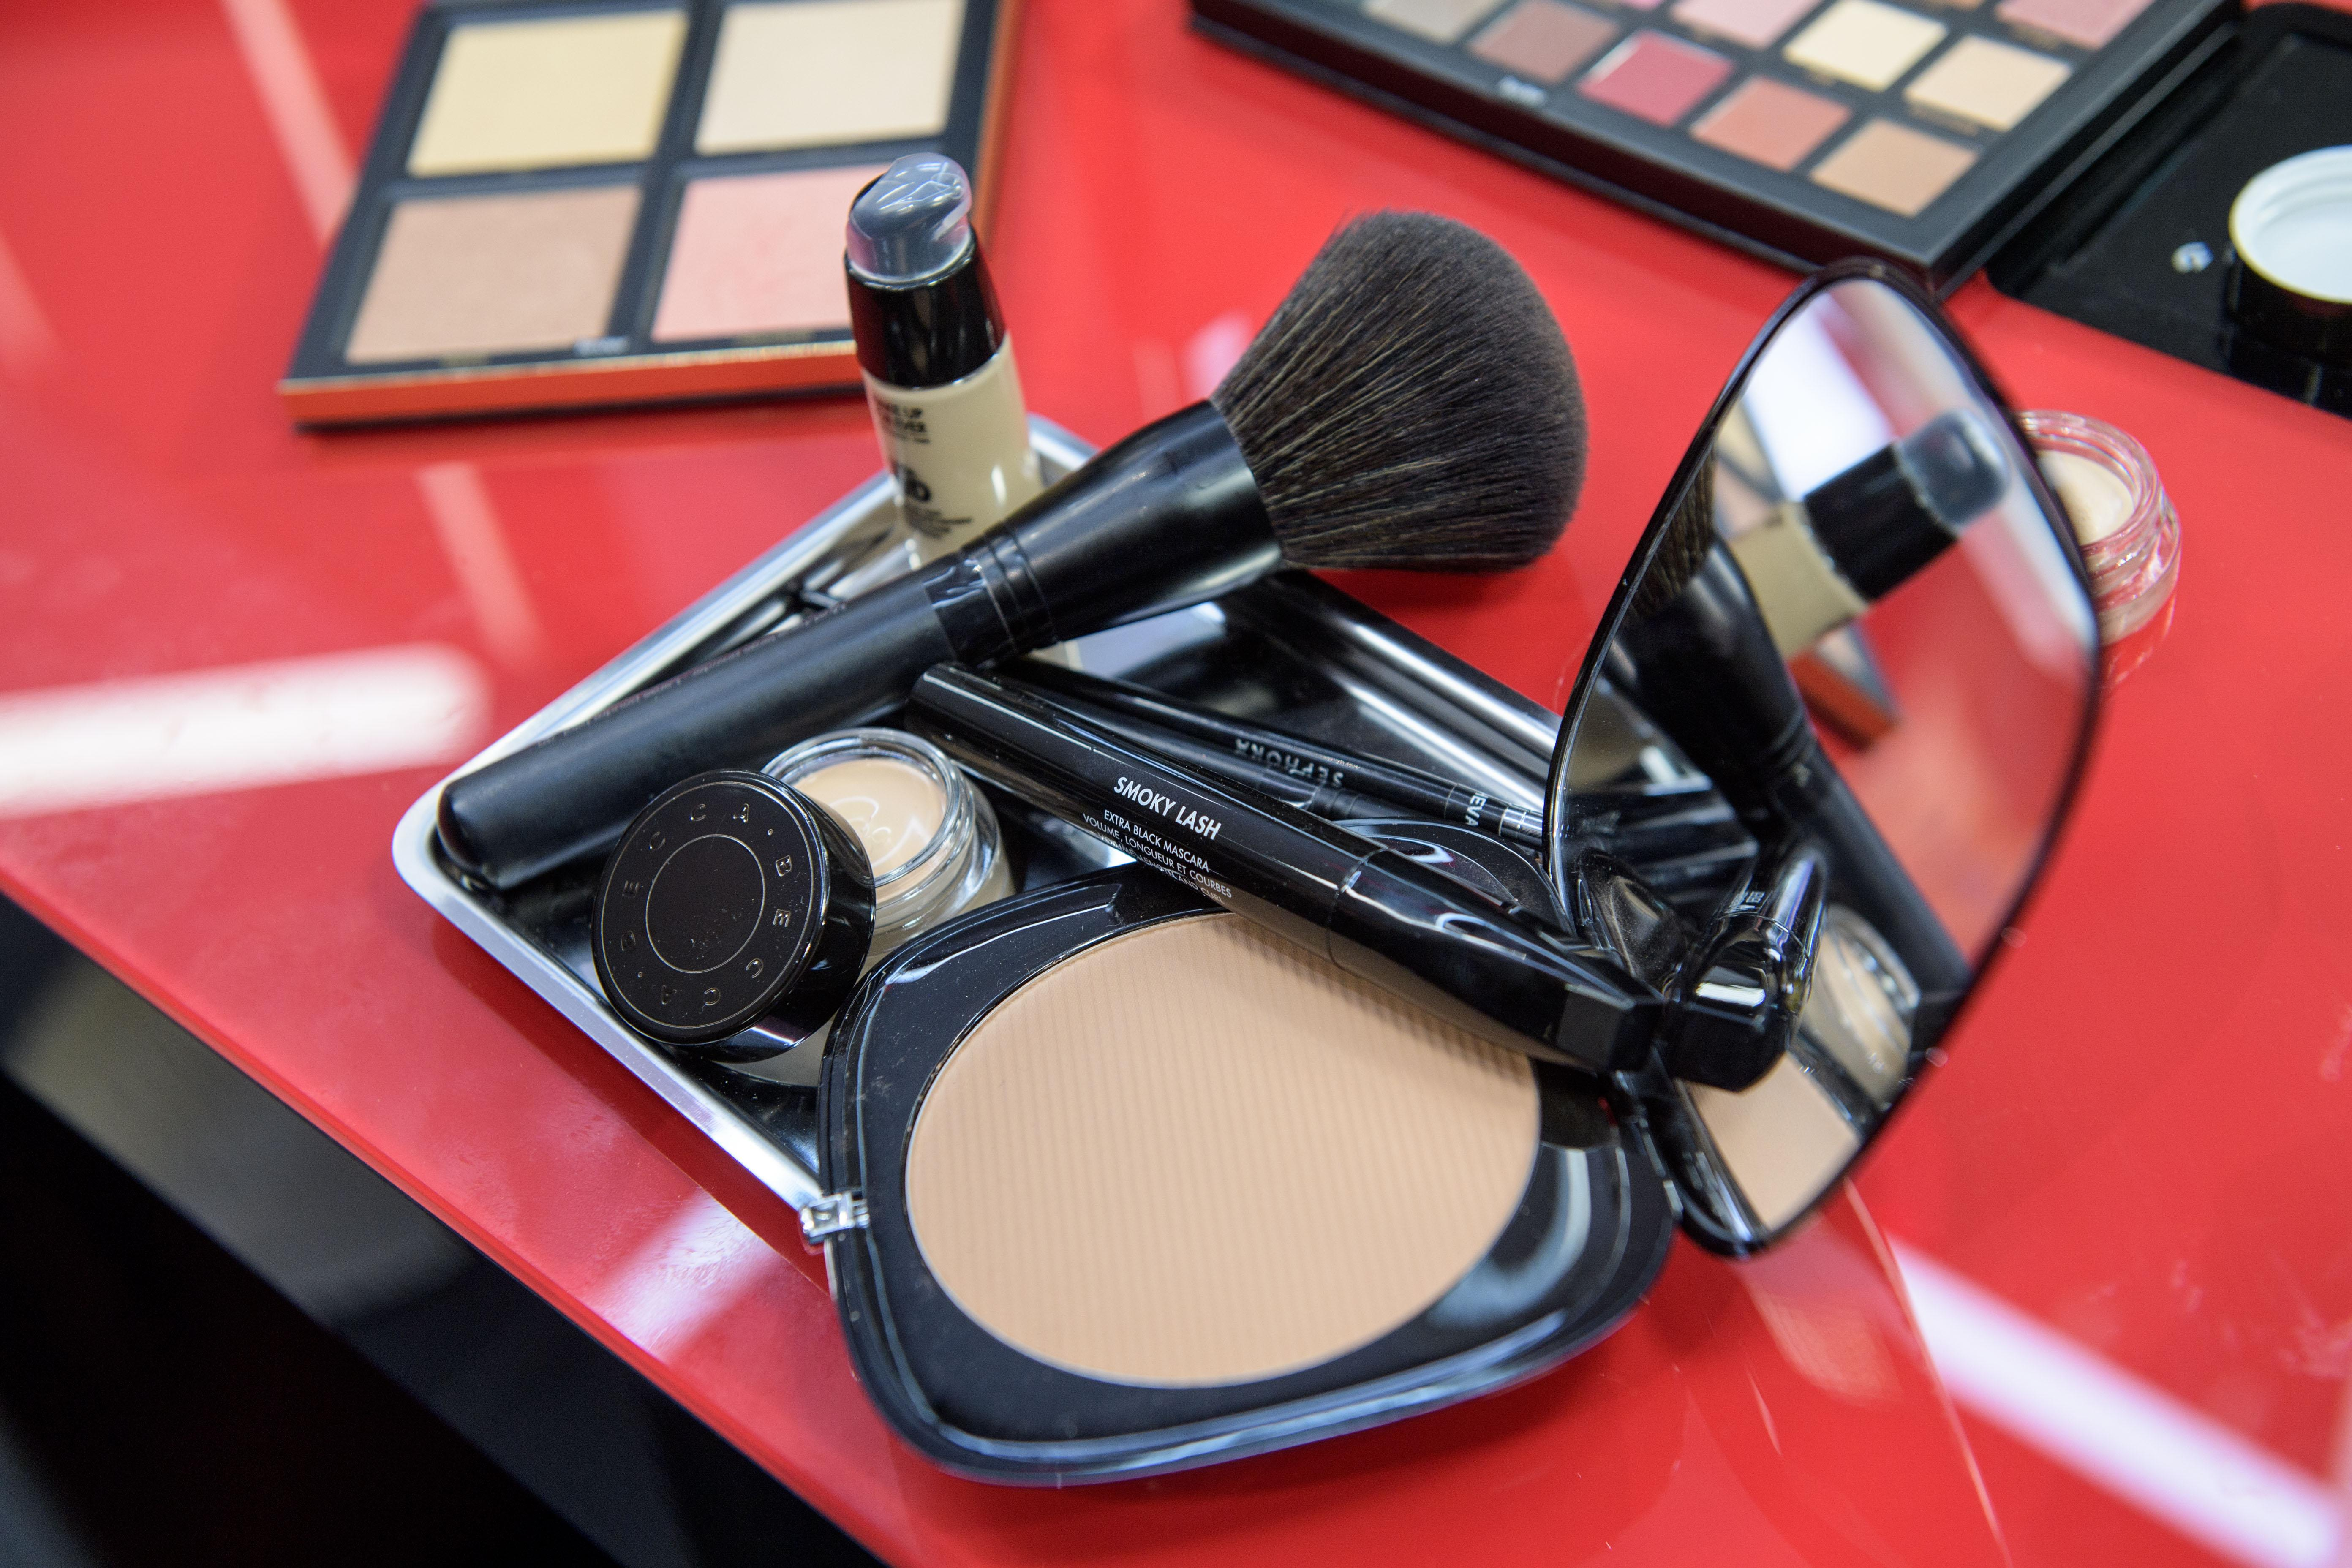 Makeup Recall 2019: Several Beauty Products Test Positive